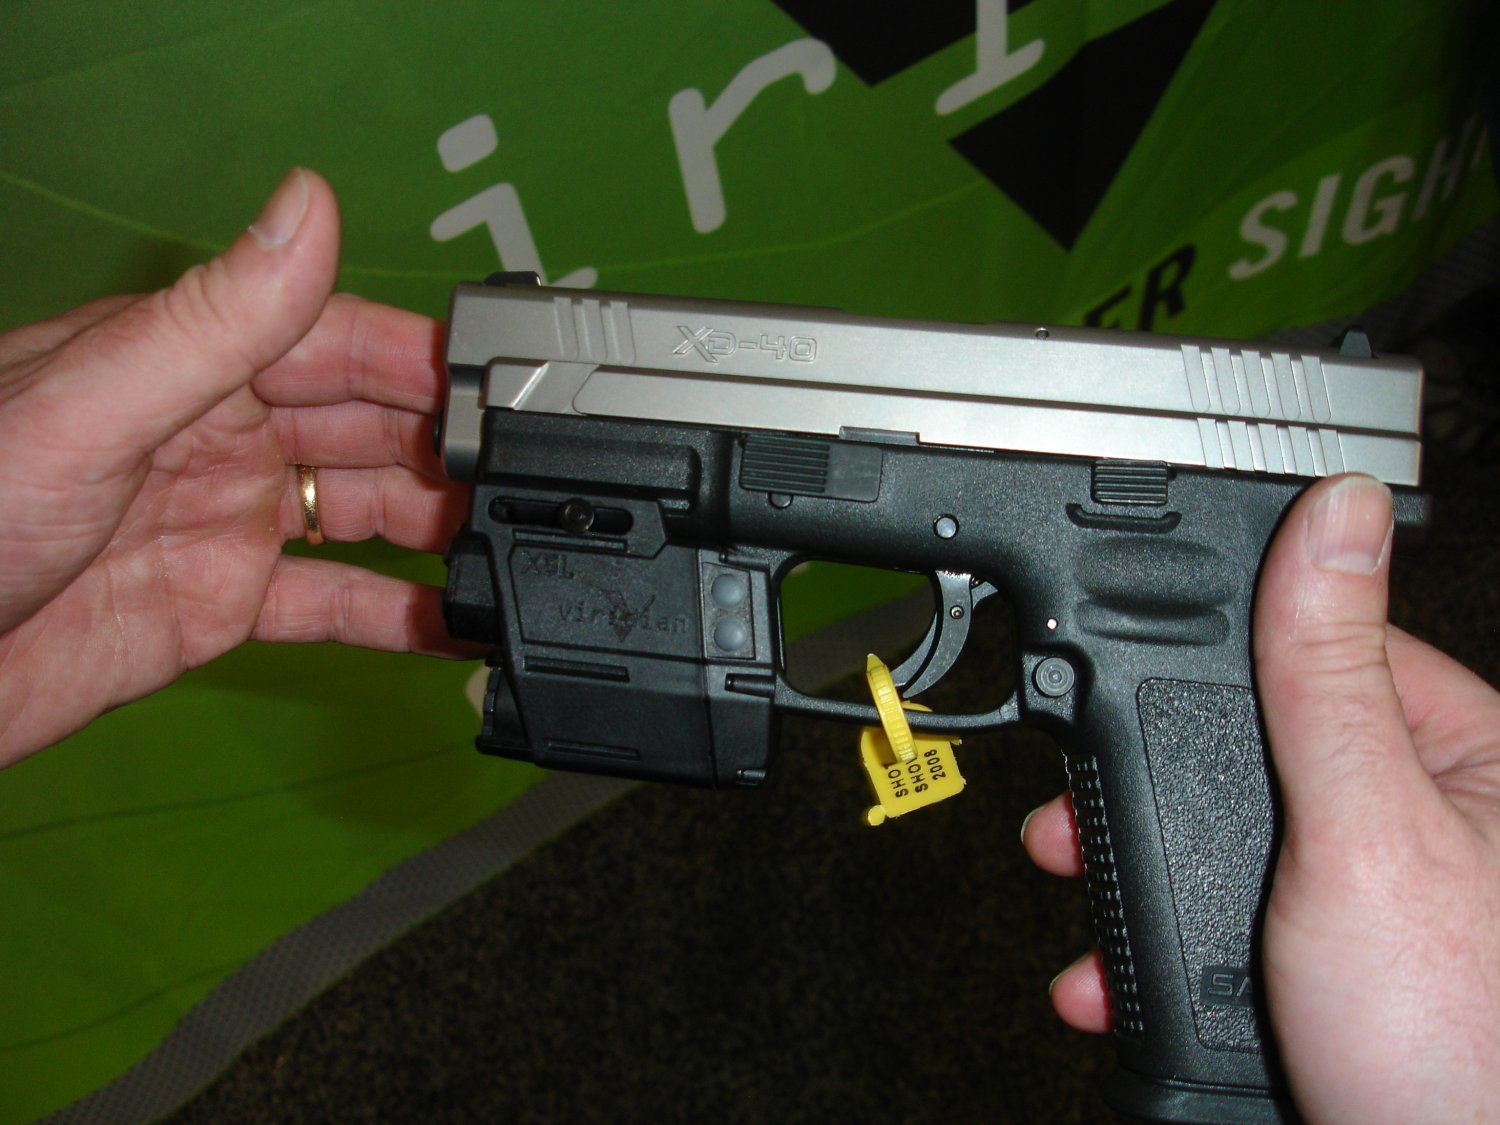 ViridianGreenLaserSights ShotShow2008 4 <!  :en  >Viridian Green Laser Sights for Tactical Weapons: Green Beats Red<!  :  >